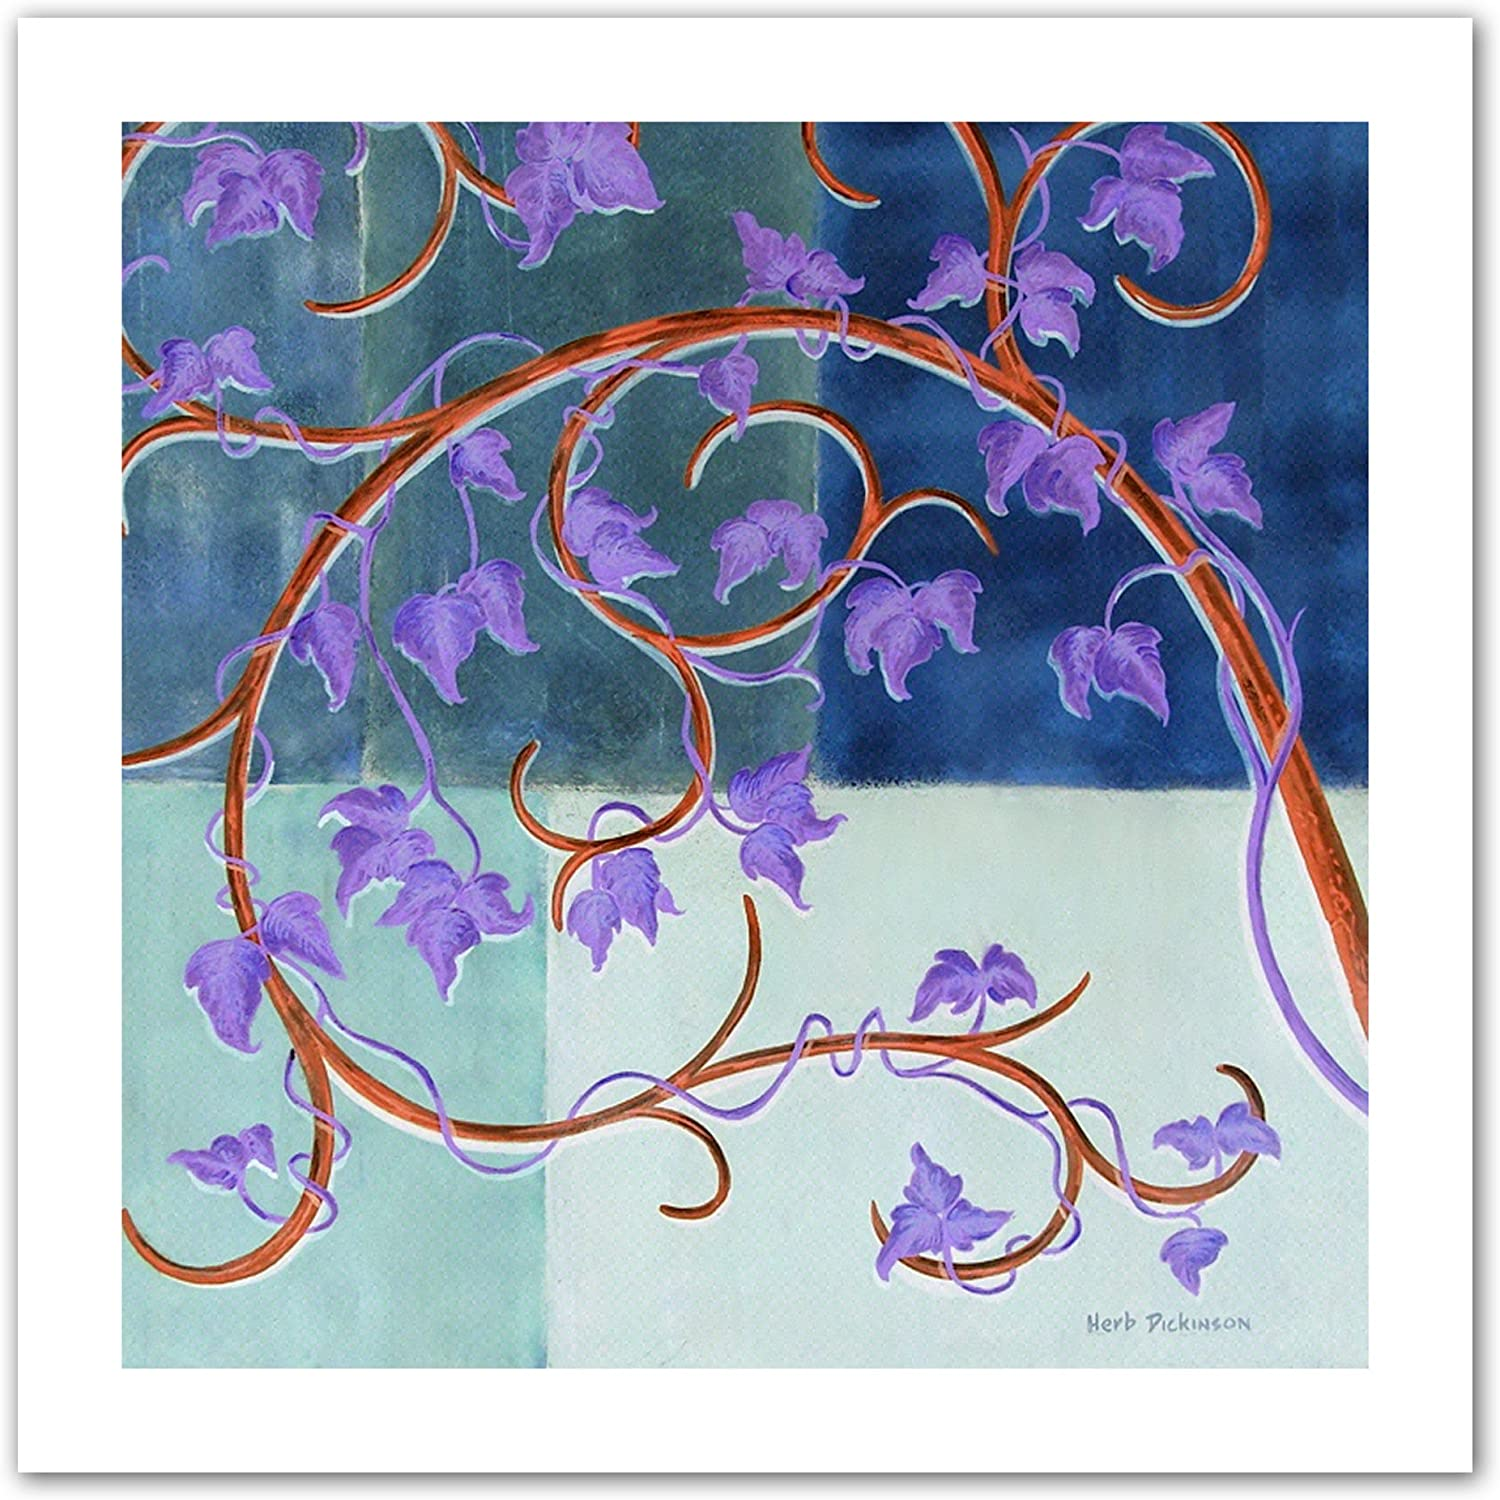 Art Wall bluee Gate by Herb Dickinson Unwrapped Canvas Artwork, 28 by 28Inch